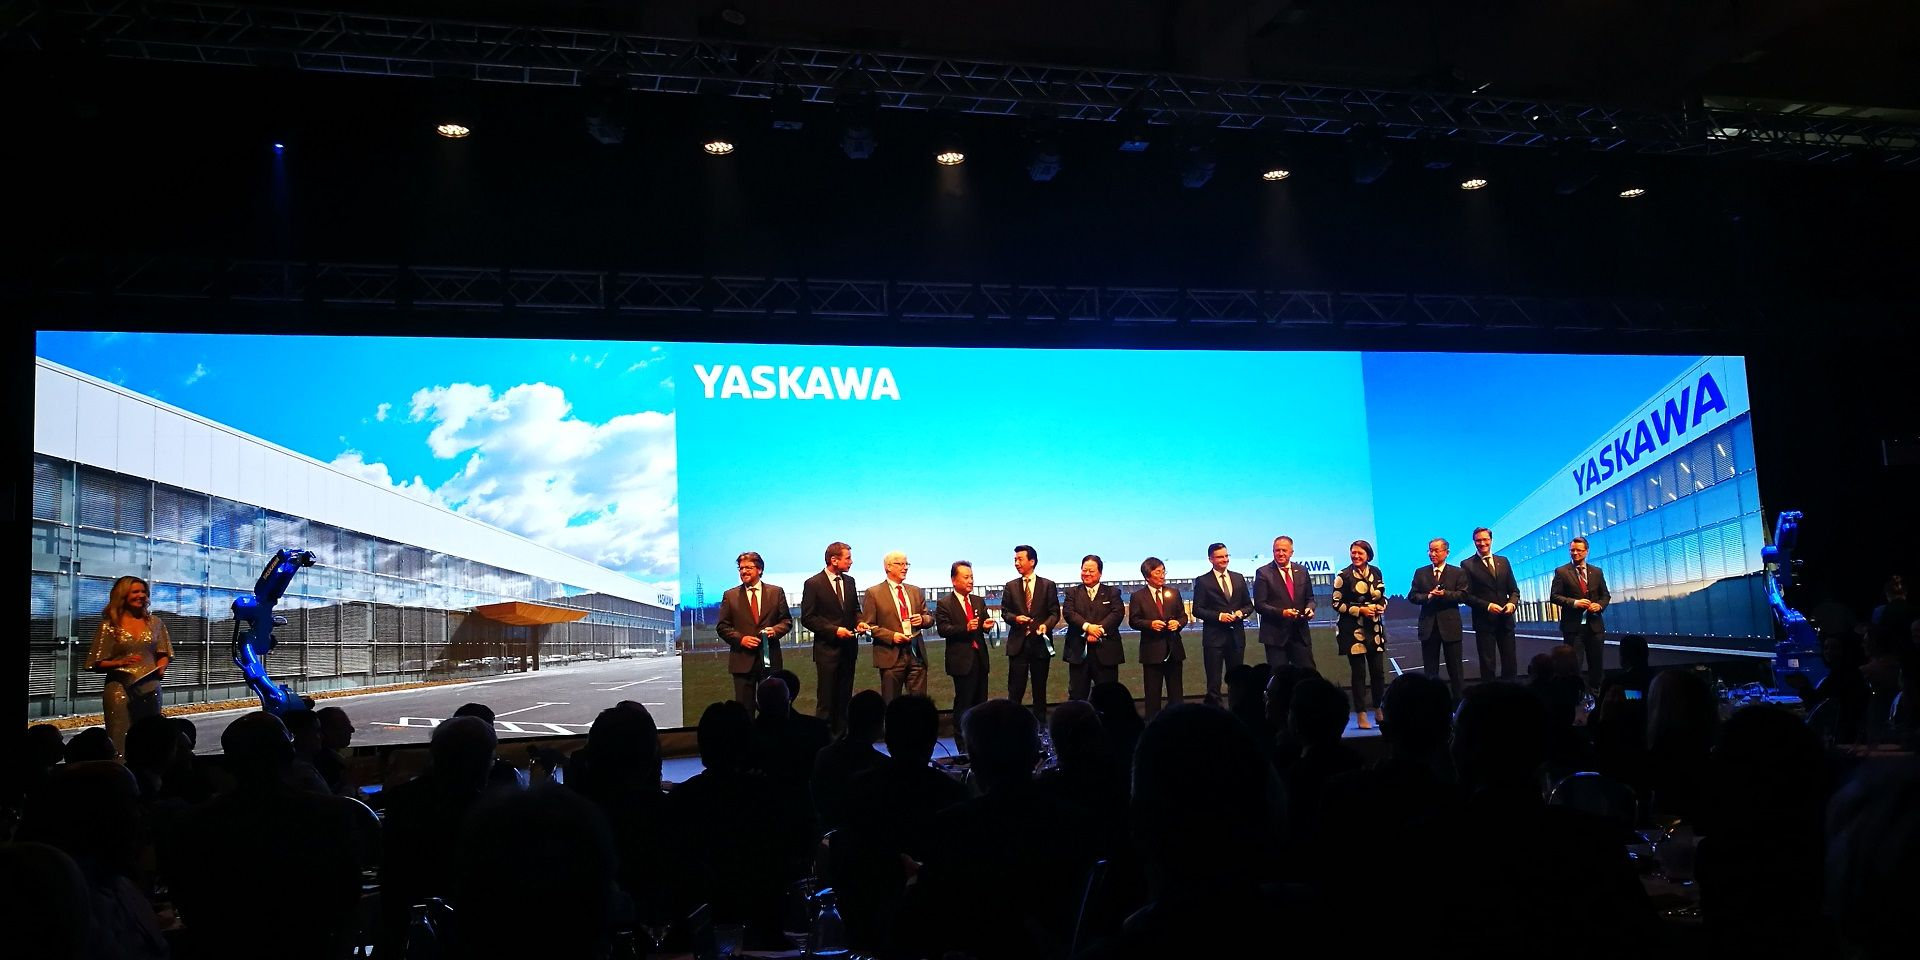 The opening of the new Yaskawa factory in Slovenia